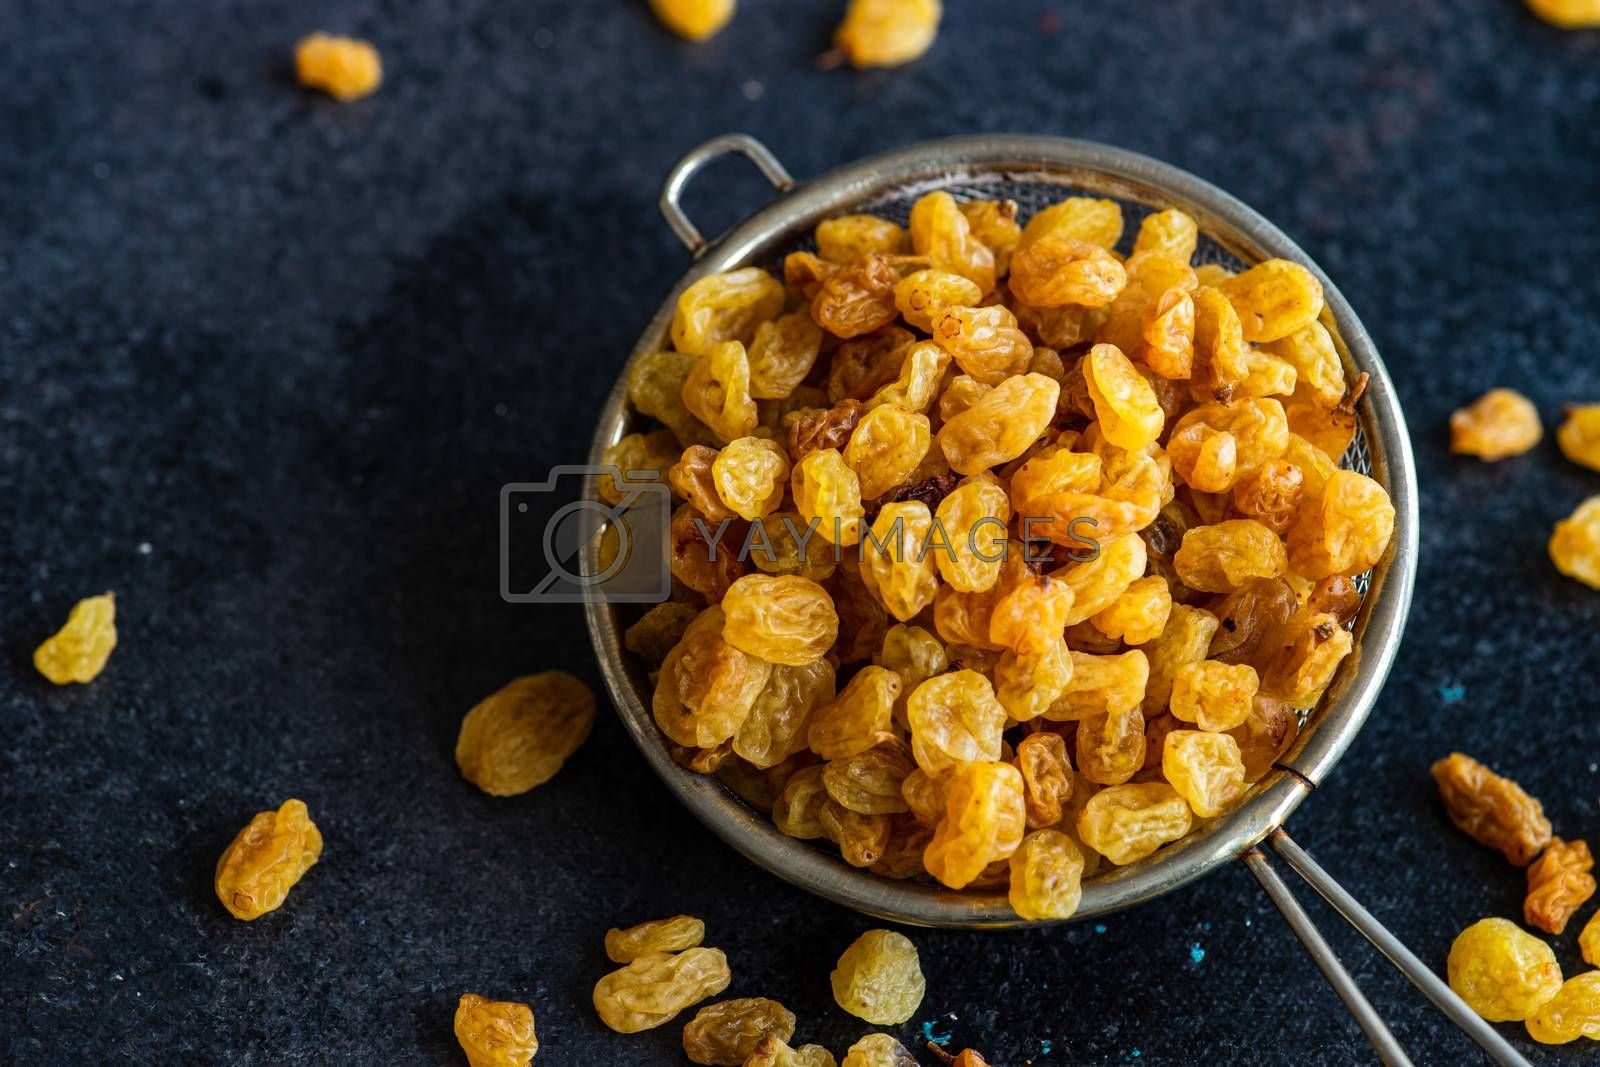 Sweet baking concept with raw raisins on dark stone background with copy space